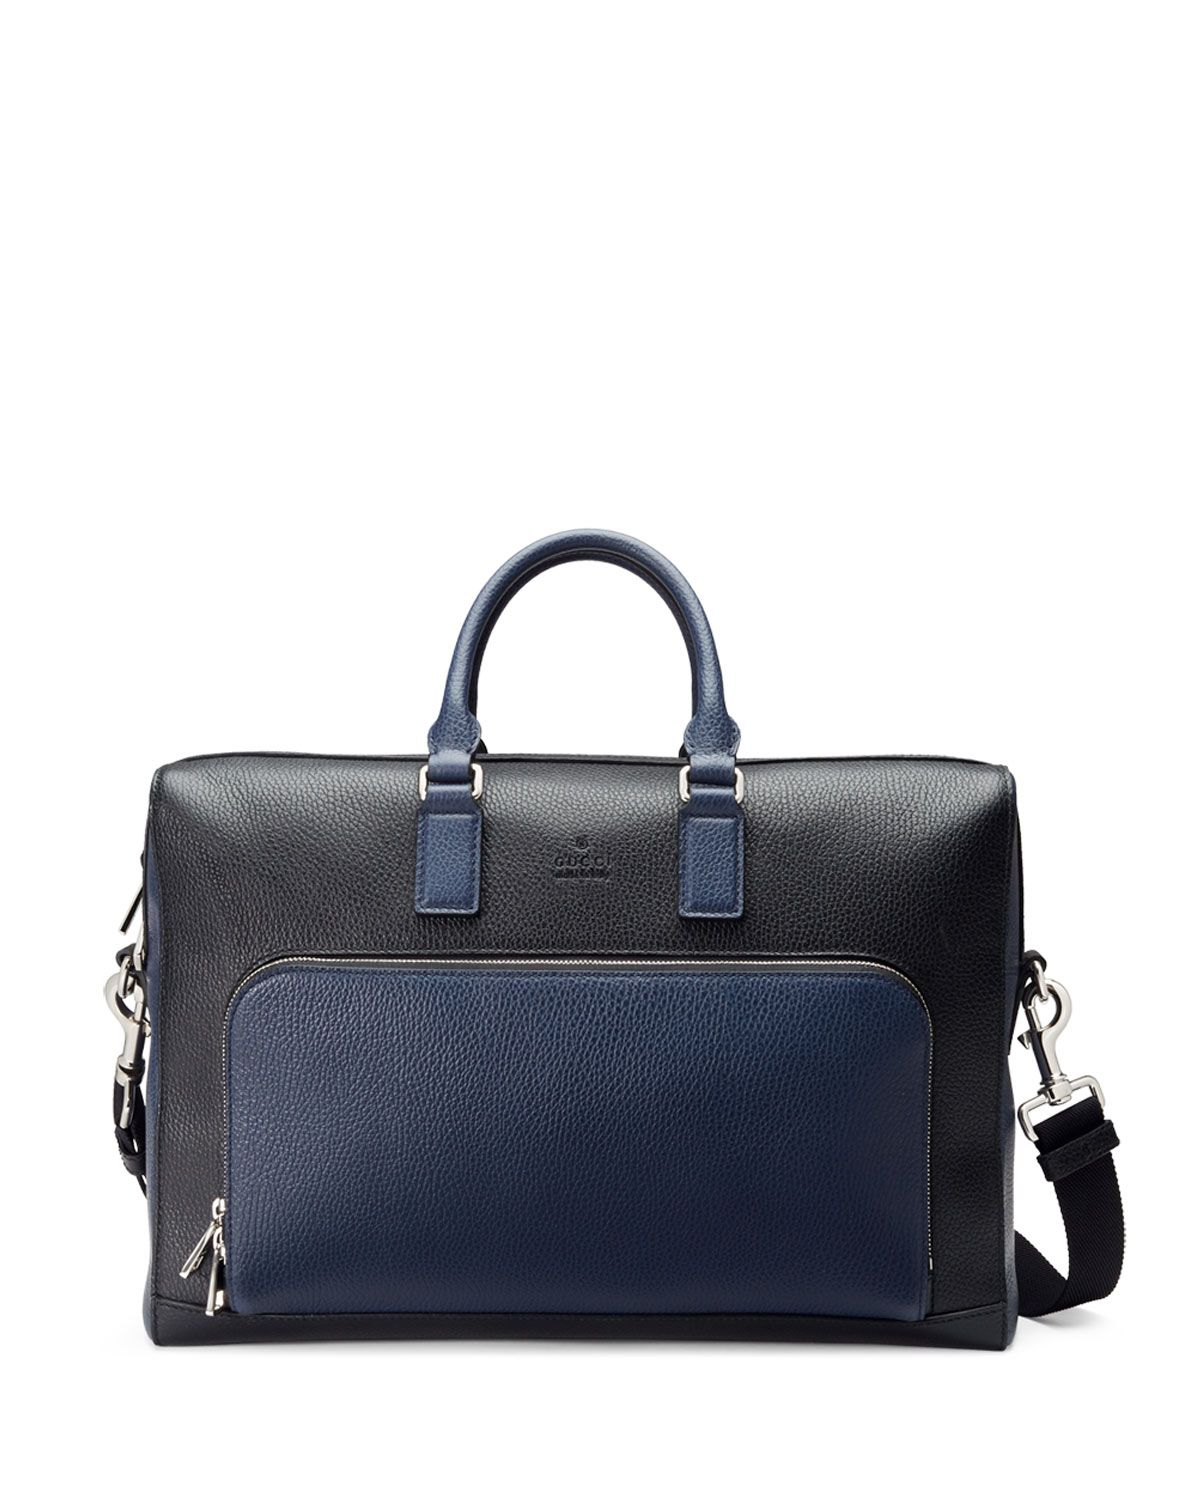 25d94ccaa2e2 Cosmopolis Leather Briefcase Black/Blue | *Luggage & Bags ...